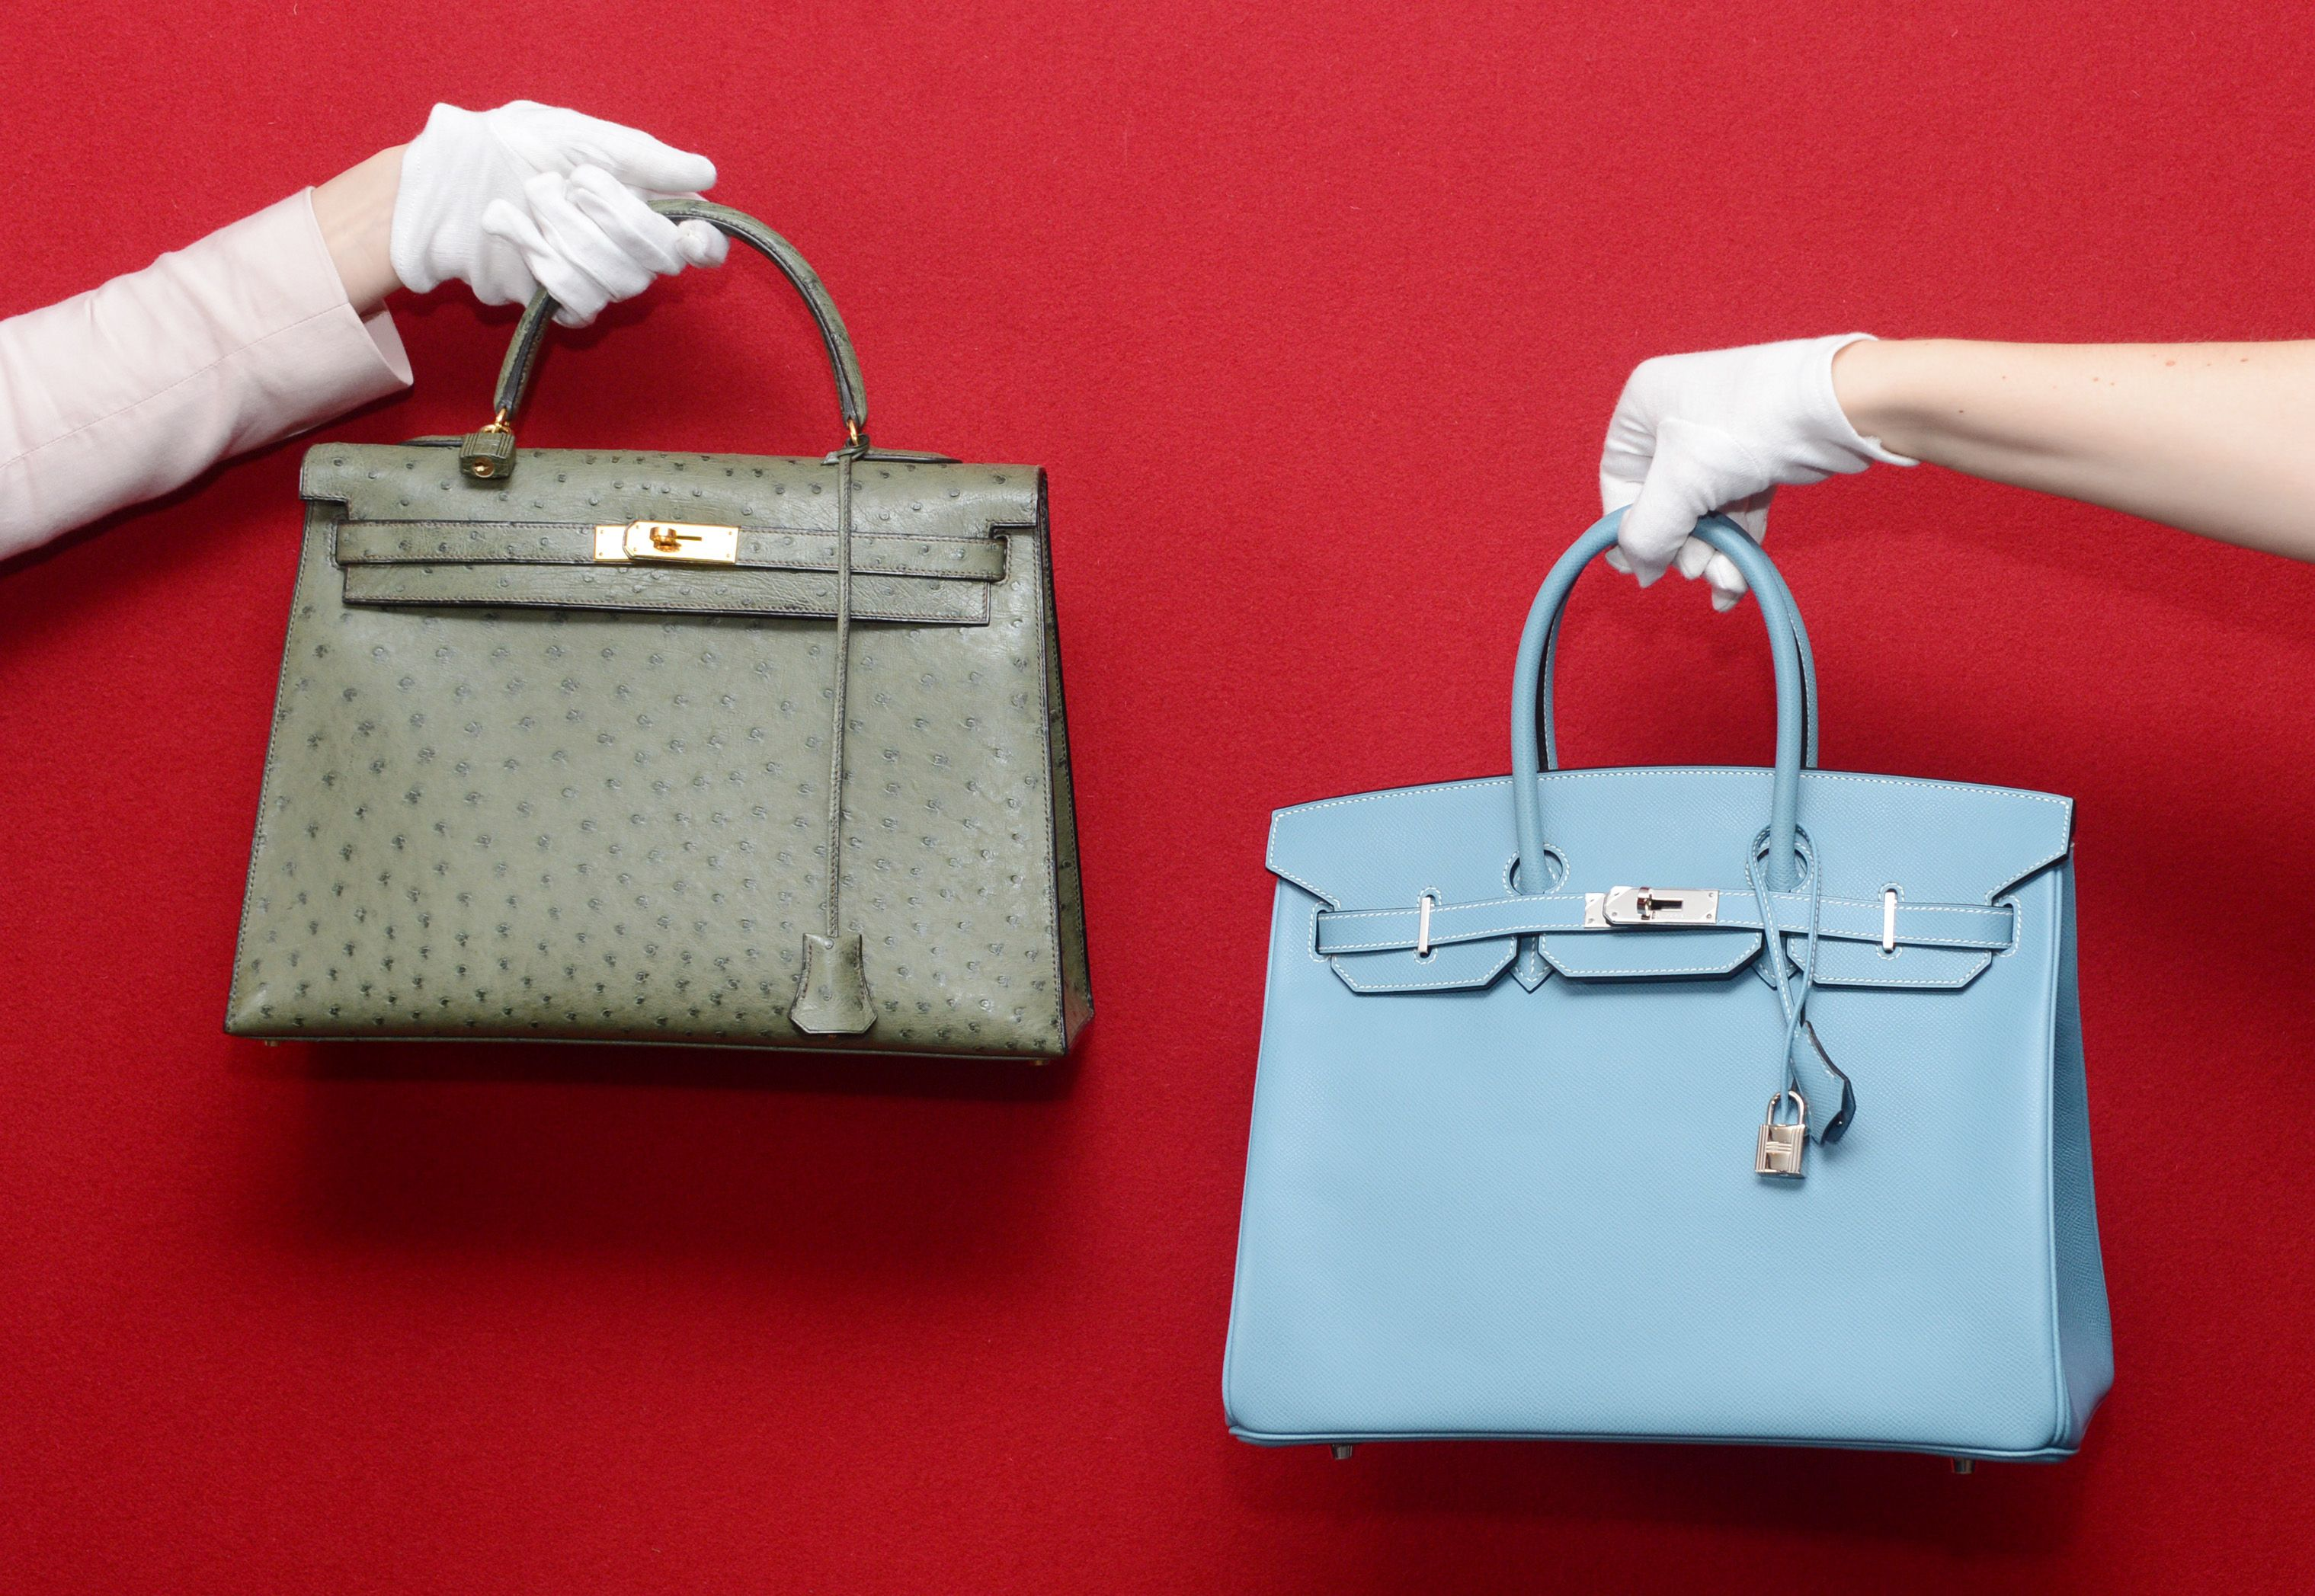 e66a4d08c5 11 Things You Didn t Know About Hermes Birkins - Hermes Birkin ...